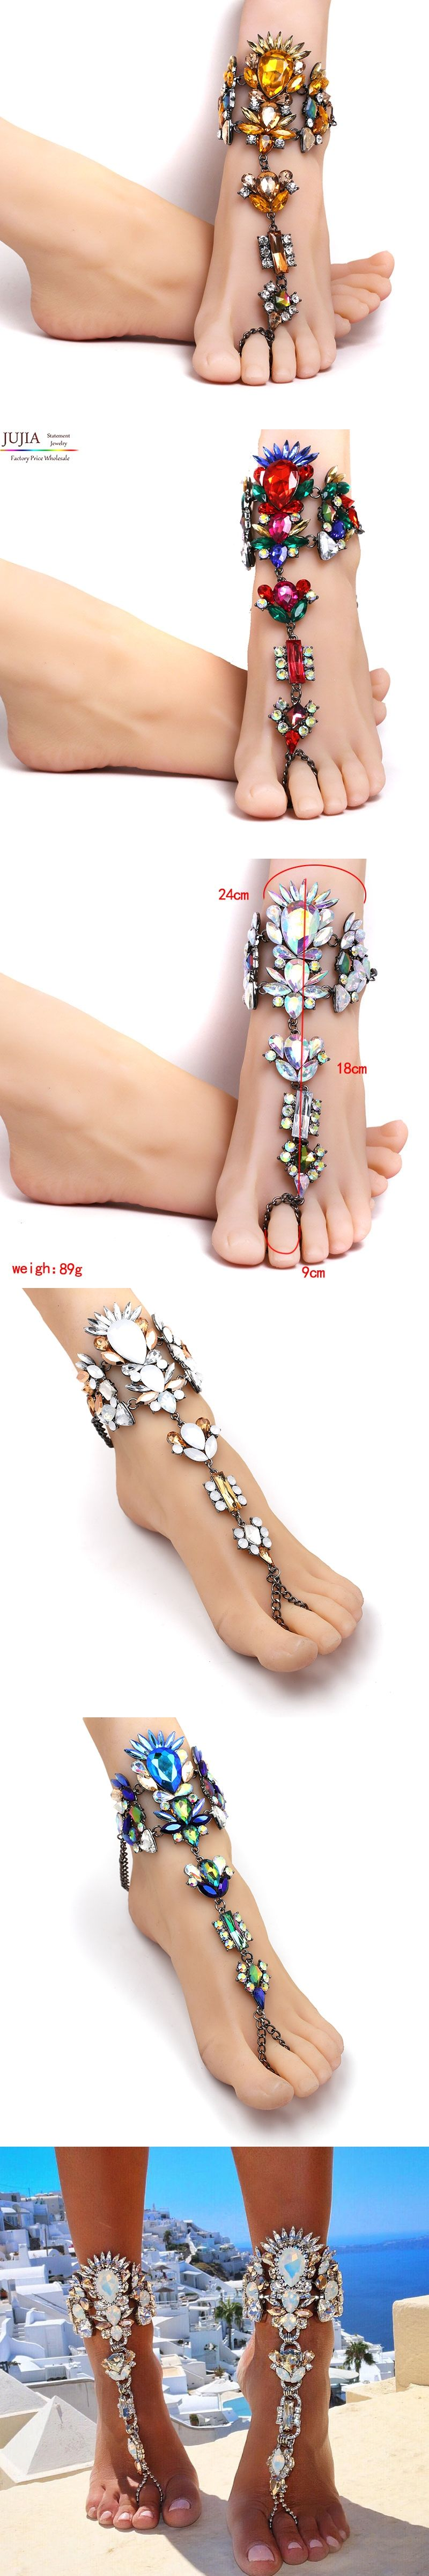 for foot female crochet bracelets jewelry women leg on chain sandals from anklet item liuyuwei new barefoot anklets ankle in